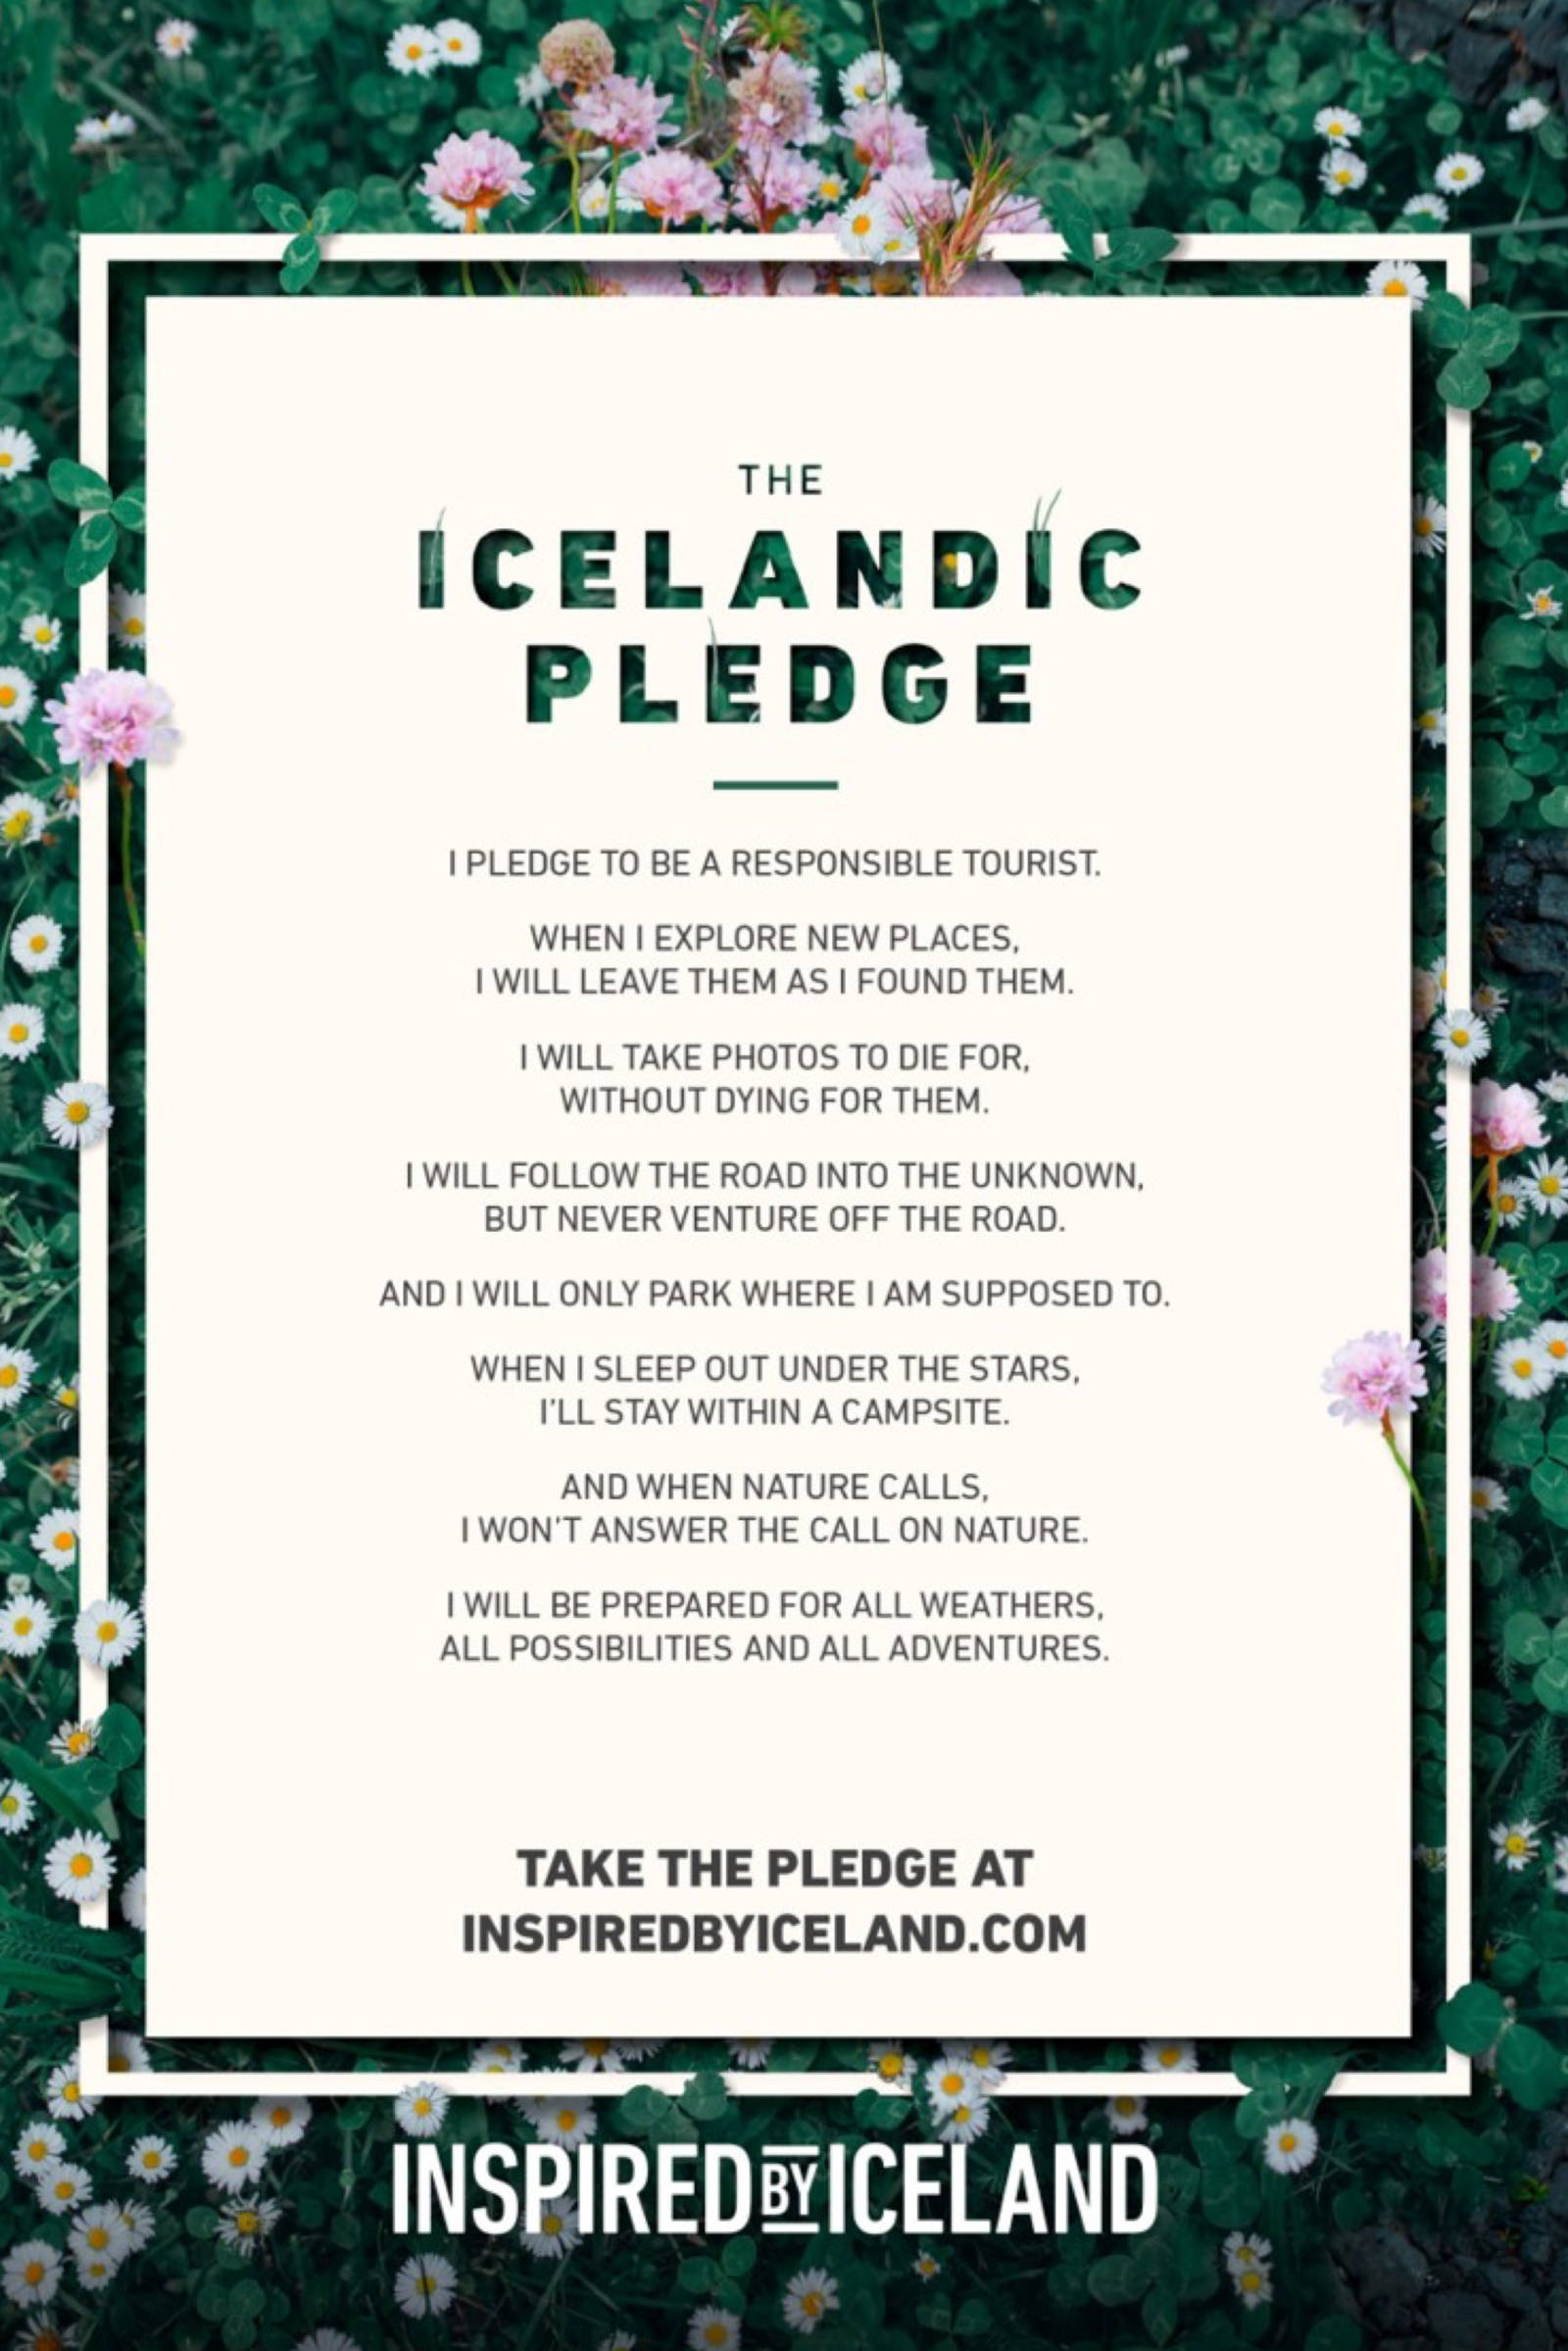 Icelandic Pledge 2